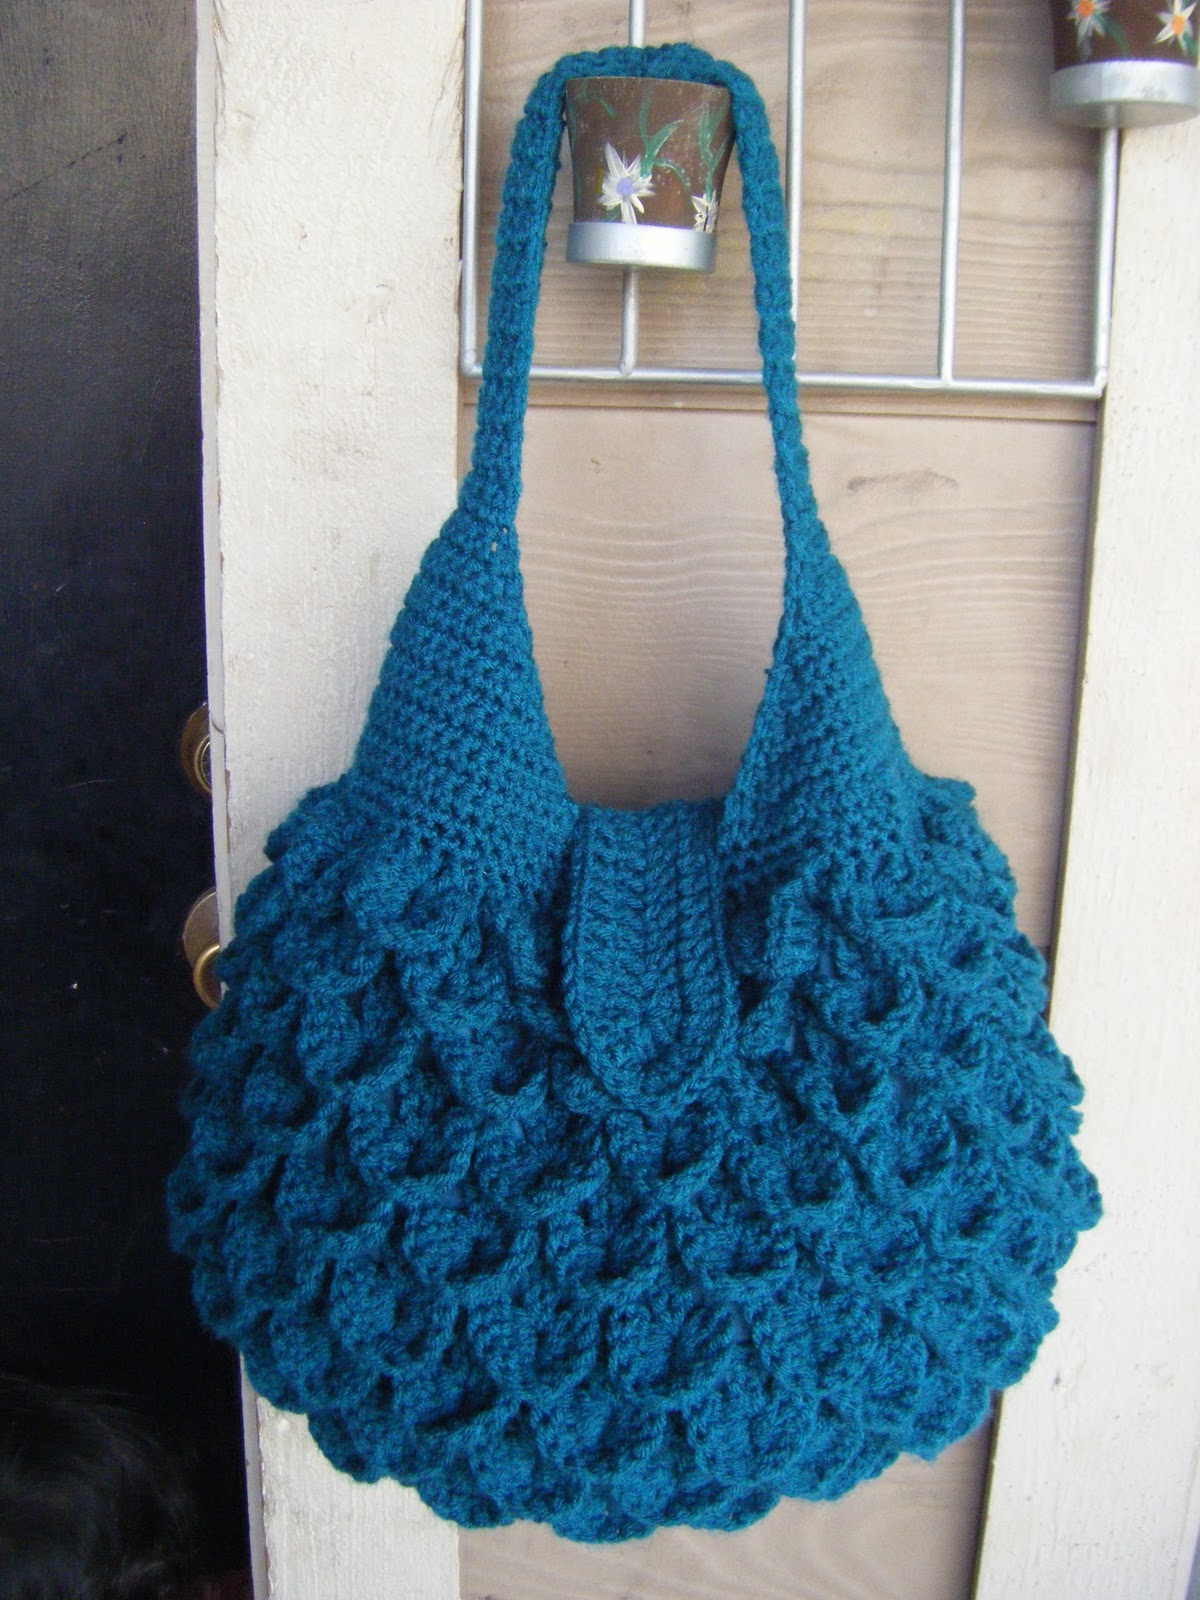 Free Crochet Patterns For Purses : Hip Hobo Bag - Christmas Crafts, Free Knitting Patterns, Free